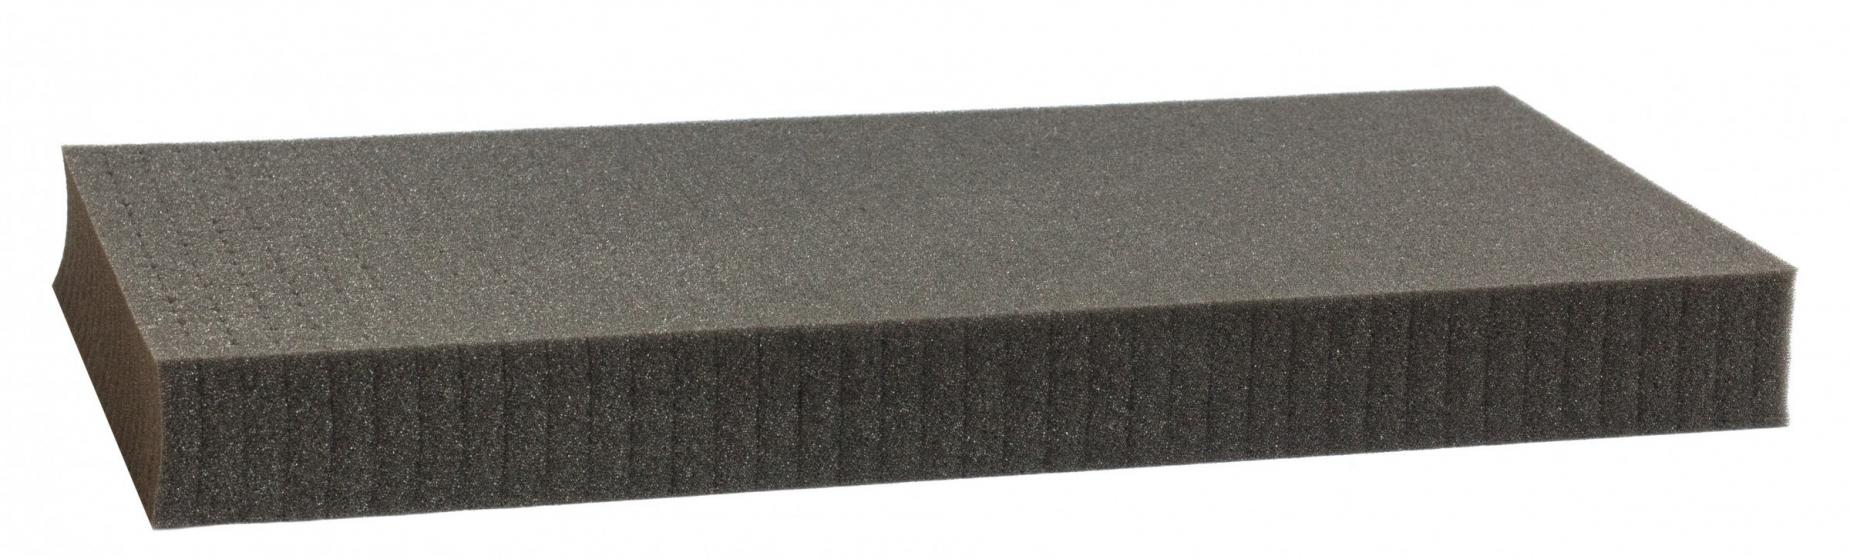 850 mm x 450 mm x 50 mm - Raster 15 mm - Pick and Pluck / Pre-Cubed foam tray